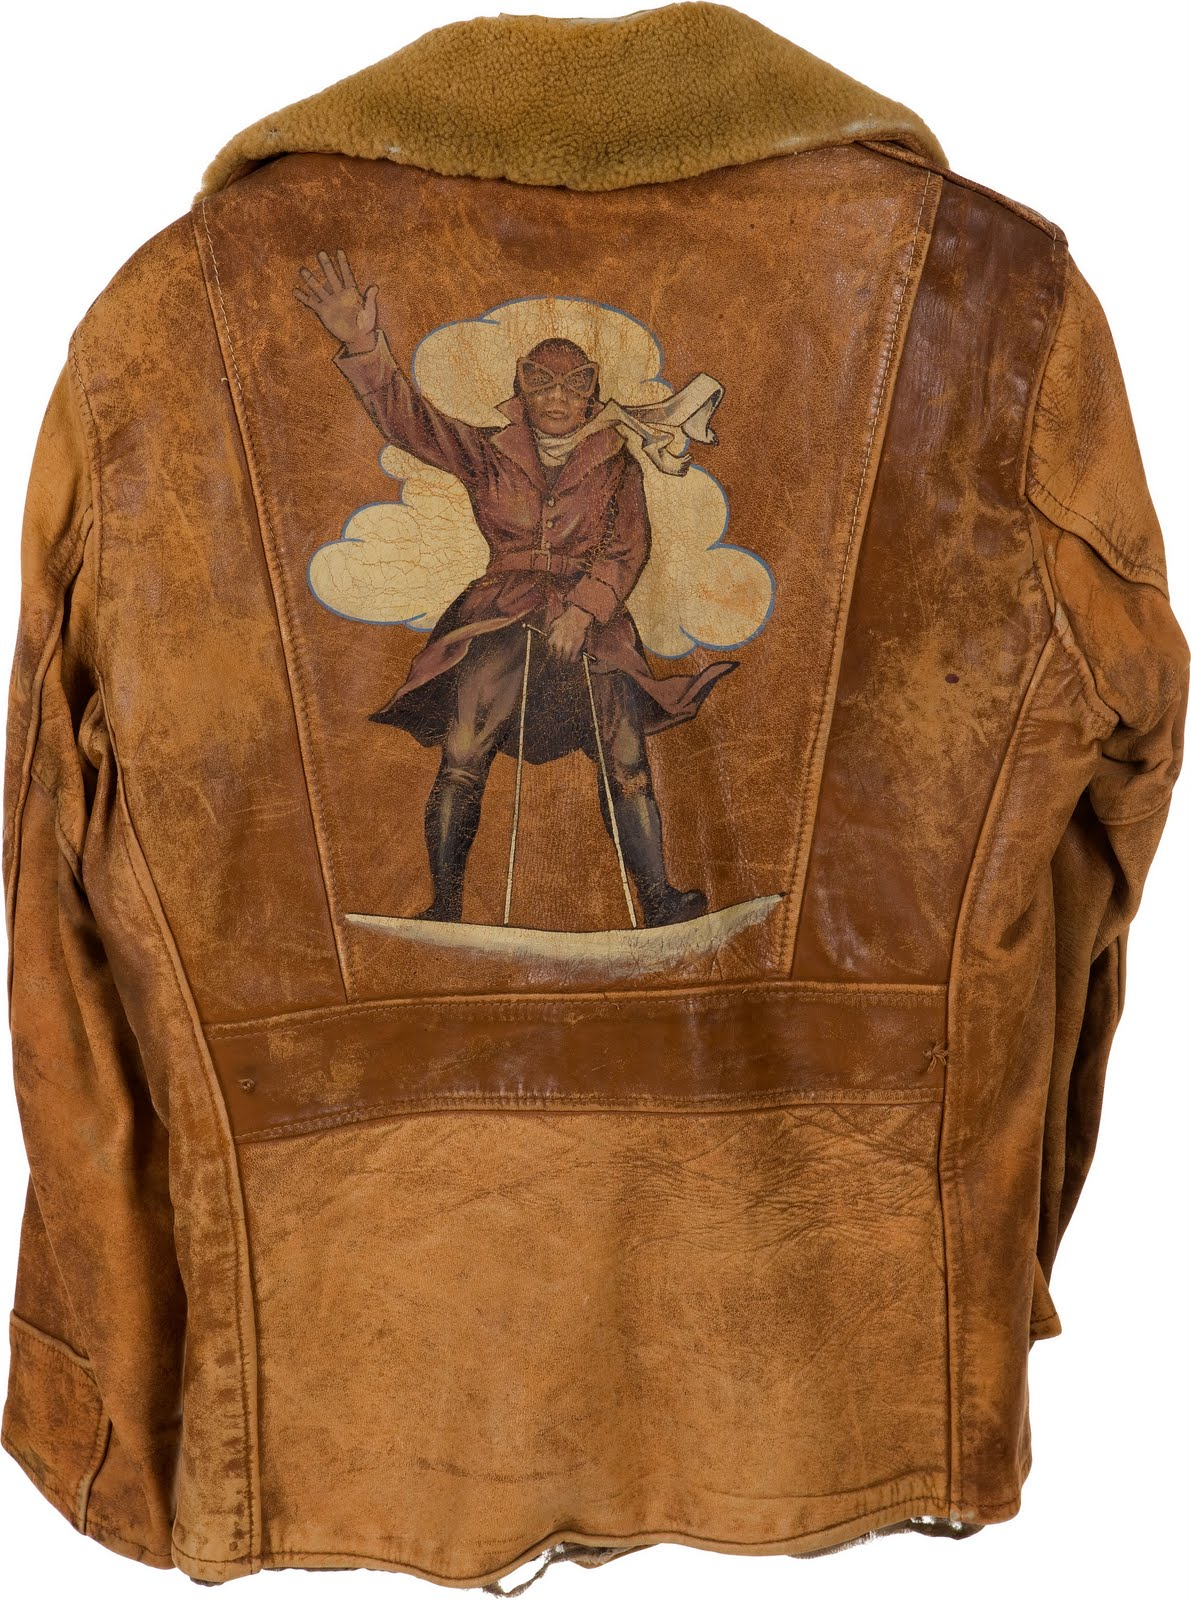 Nostalgia on Wheels: WWI Daredevil Fighter Piolet Flight Jacket & Cap